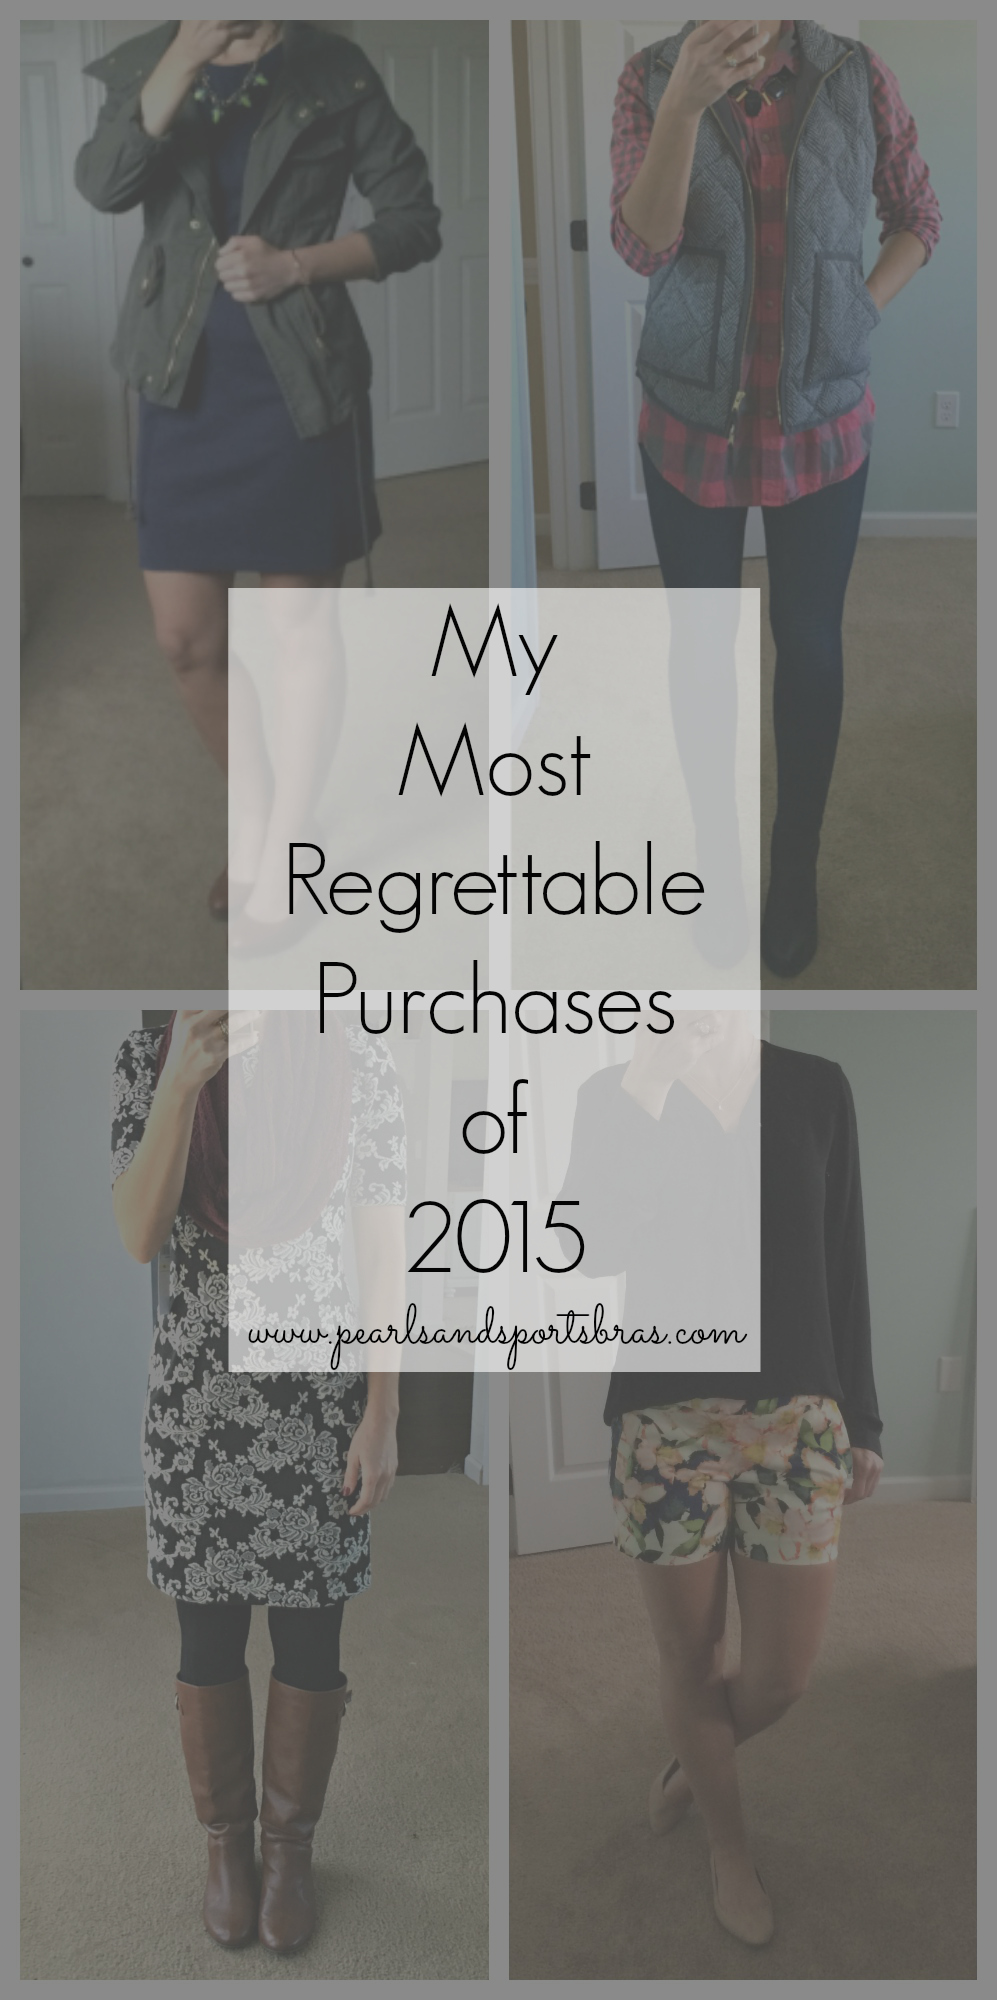 My Most Regrettable Purchases of 2015 |www.pearlsandsportsbras.com|